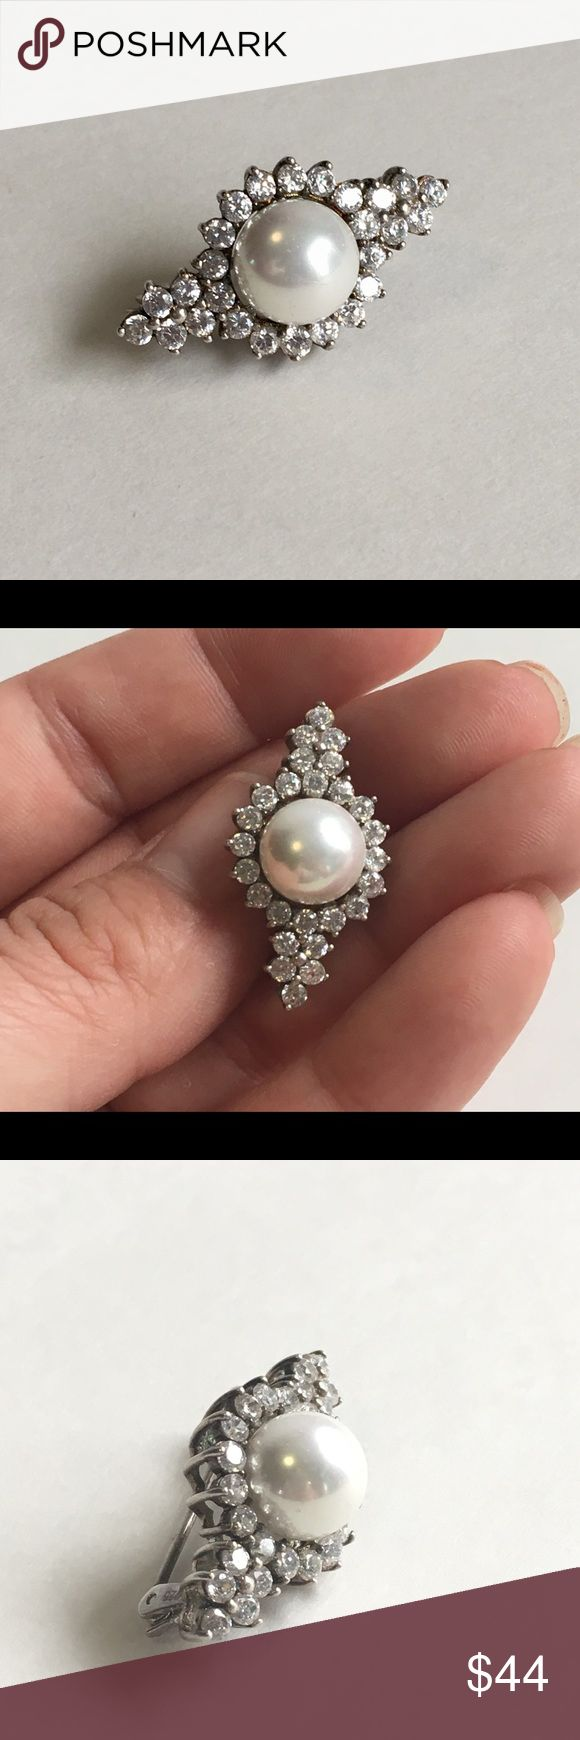 Pearl and CZ Sterling Silver Brooch 925 Vintage A gorgeous Sterling Silver Brooch with sparkly cubic zirconia and a lustrous faux Pearl. This is a petite piece but will definitely get noticed as the CZ's and Pearl really catch the light. This would make a great gift! Stamped 925. Good vintage condition with some tarnish and patina. Check out the photos and use them as part of the description. My closet is packed with amazing vintage jewelry, check it out. 💕😍❤️ Vintage Jewelry Brooches